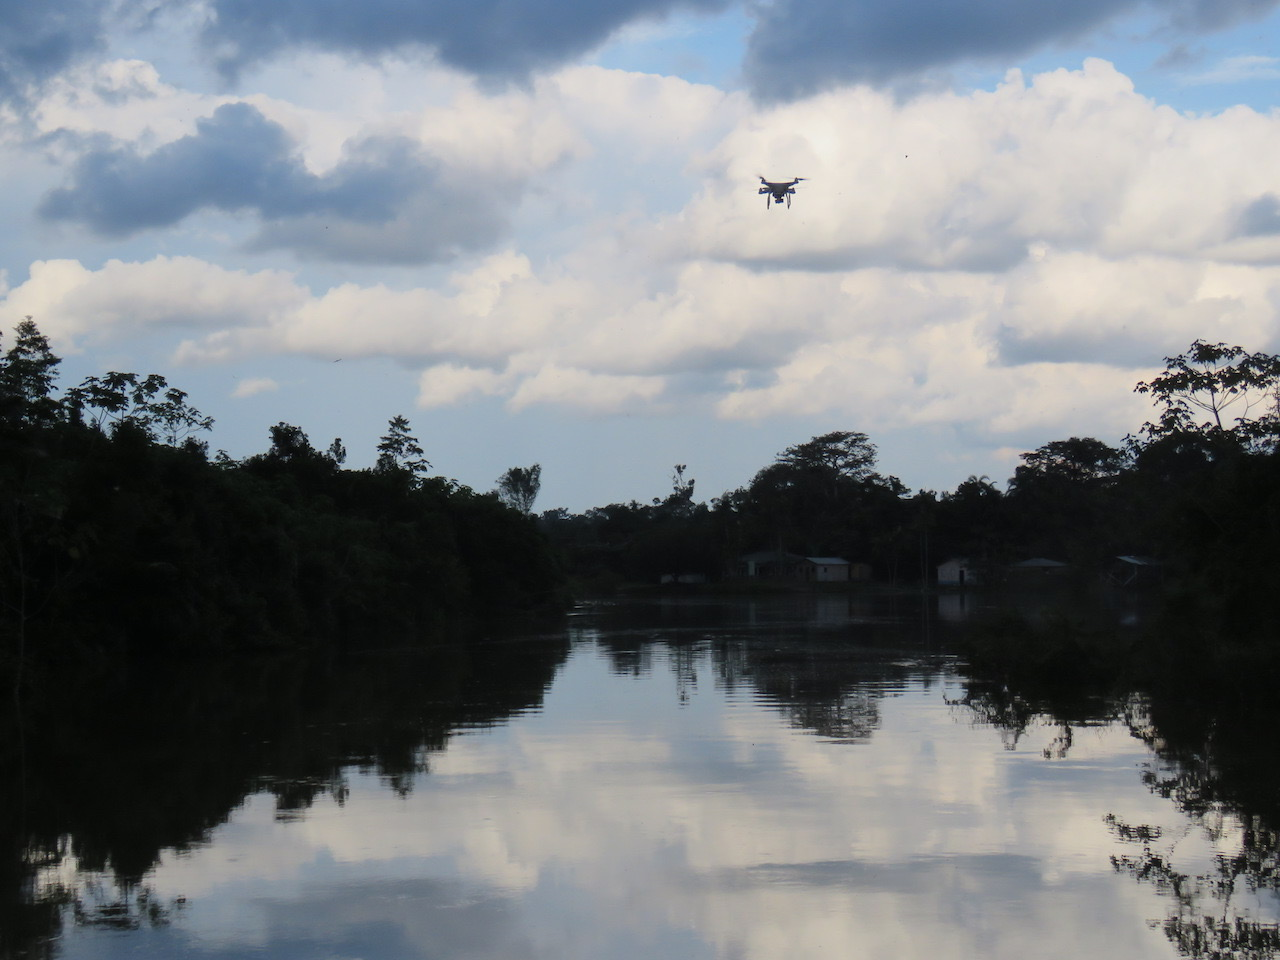 Our drone hovers over the Rio Eiru before returning back to the houseboat after a mission to map a nearby forest and igarape. Foto by Laura K Marsh